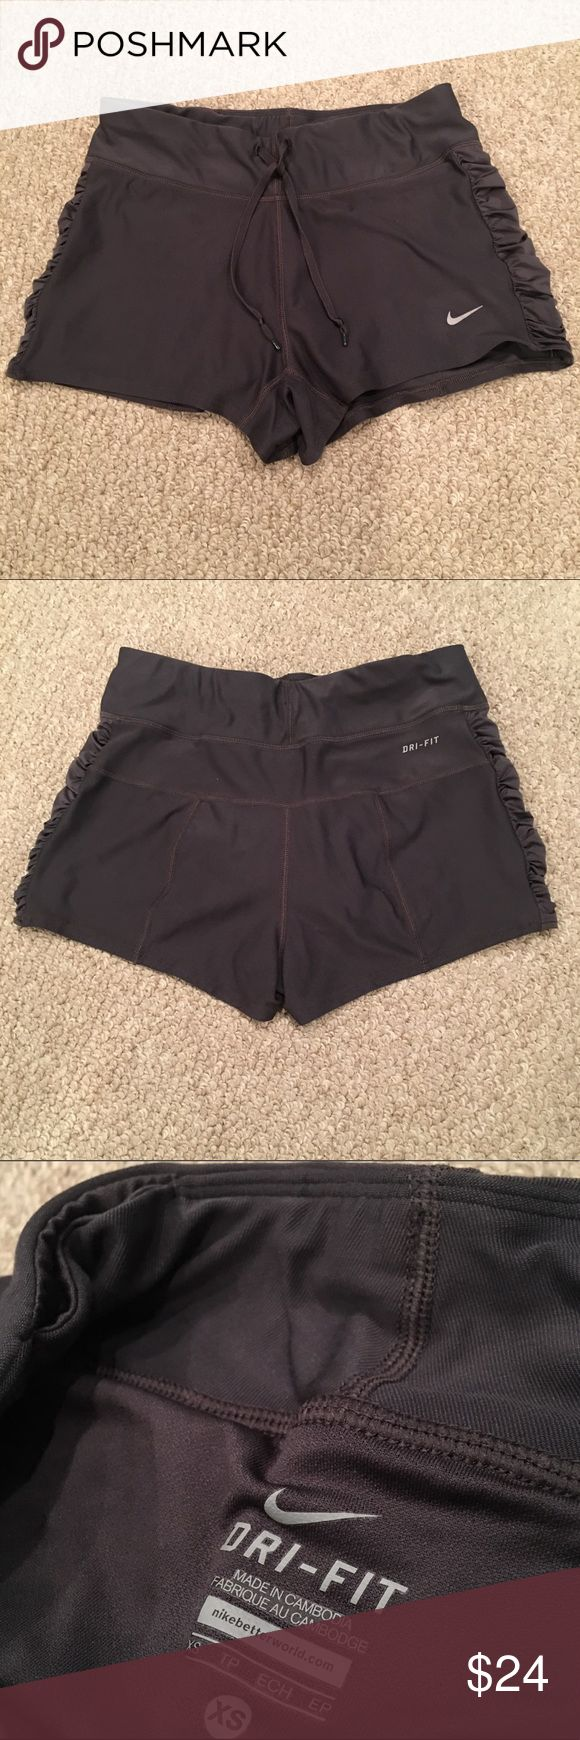 Nike Dri-fit Dark Gray Stay Cool Shorts Nike Dri-Fit Shorts dark Grey. Perfect for running, yoga, crossfire, any activity. They are in great condition except for a small snag on the top left (see last pic) hardly noticeable! Nike Shorts